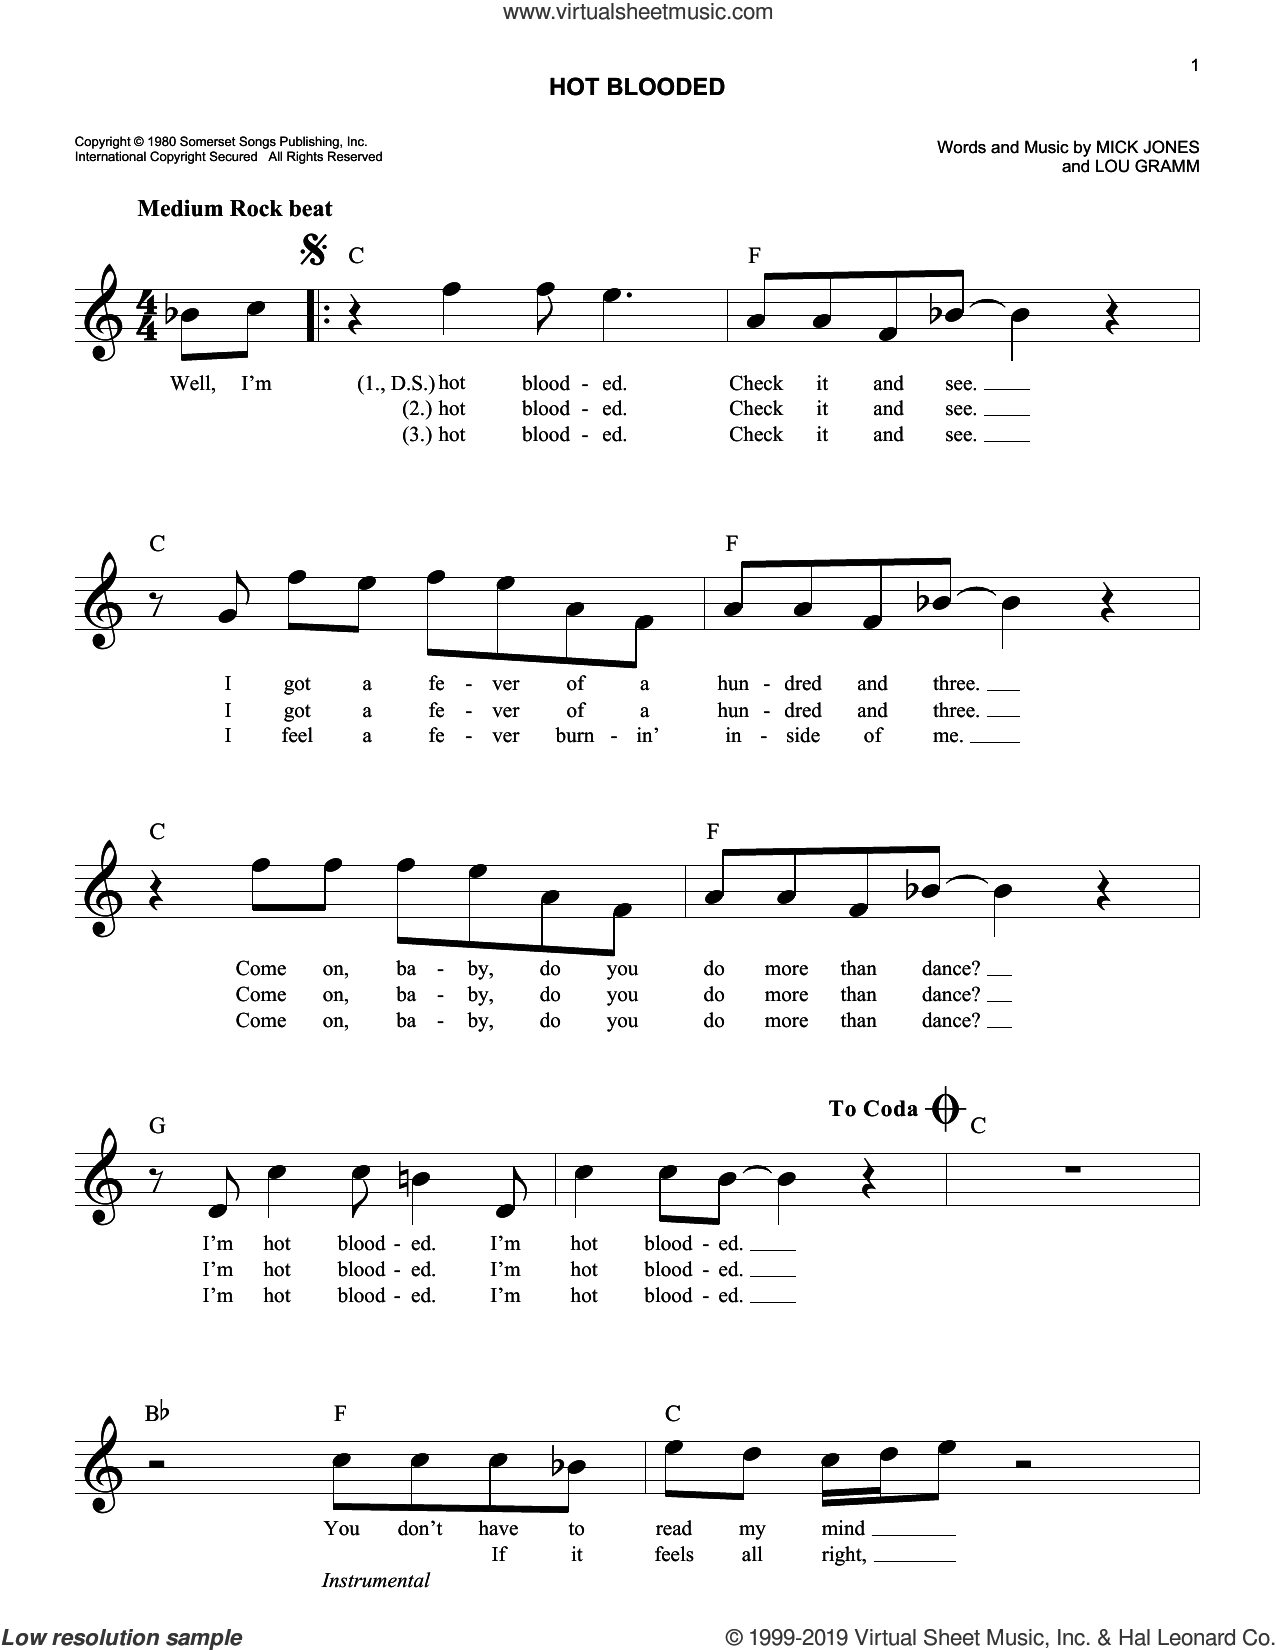 Hot Blooded sheet music for voice and other instruments (fake book) by Foreigner, Lou Gramm and Mick Jones, intermediate skill level